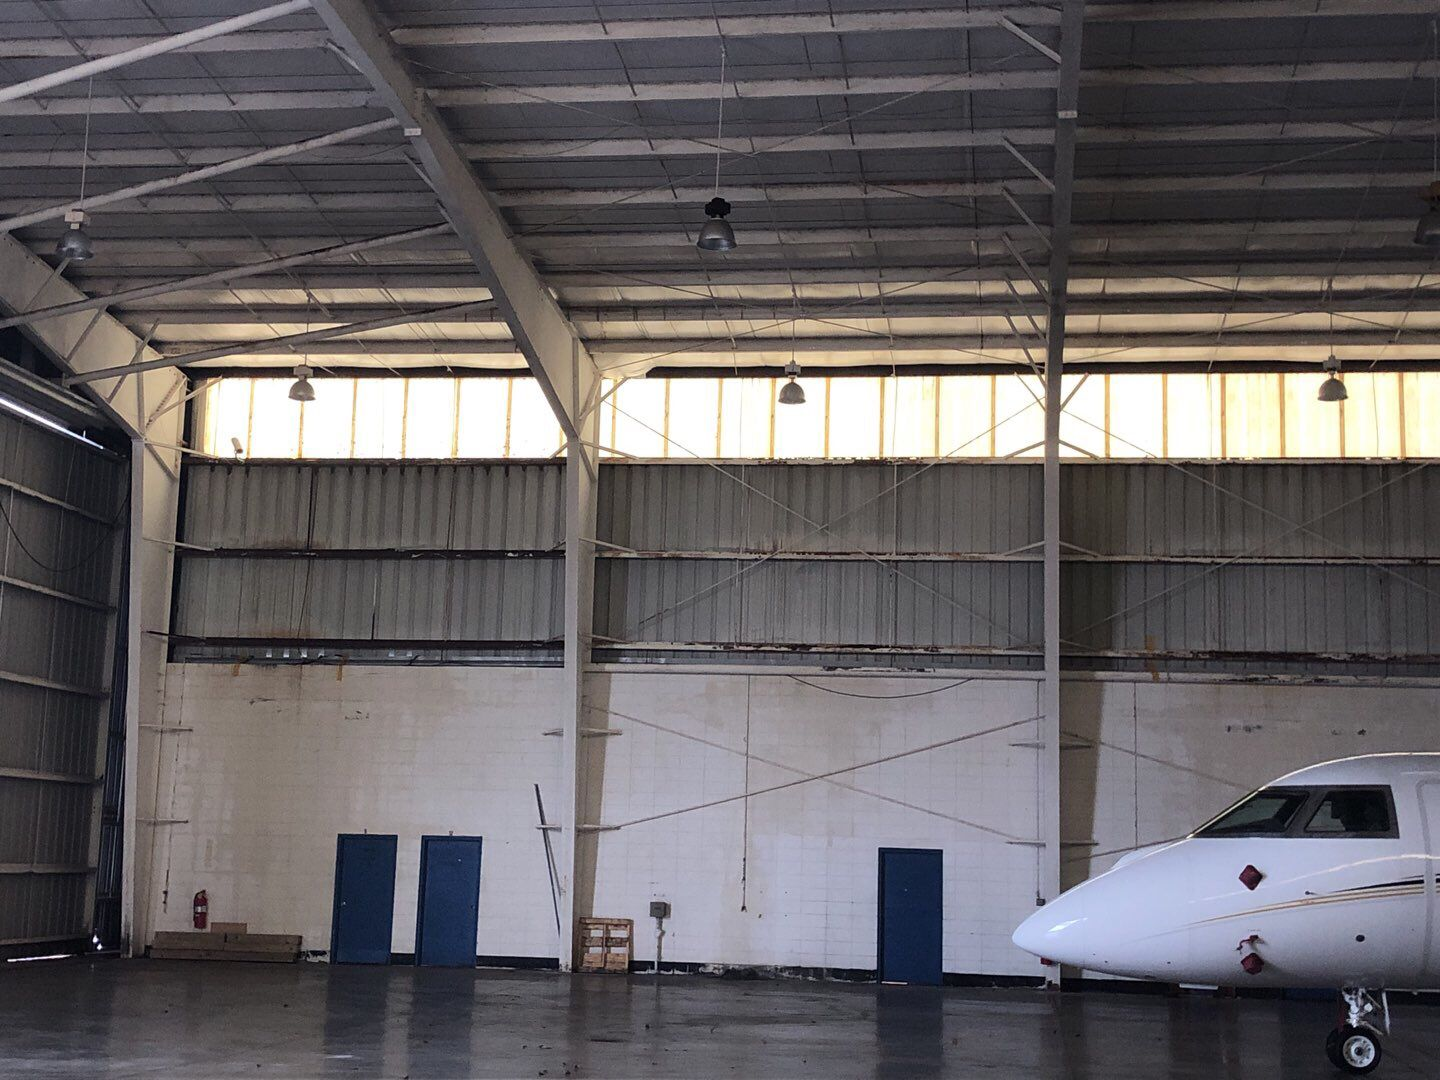 Aircraft Industrial Coatings